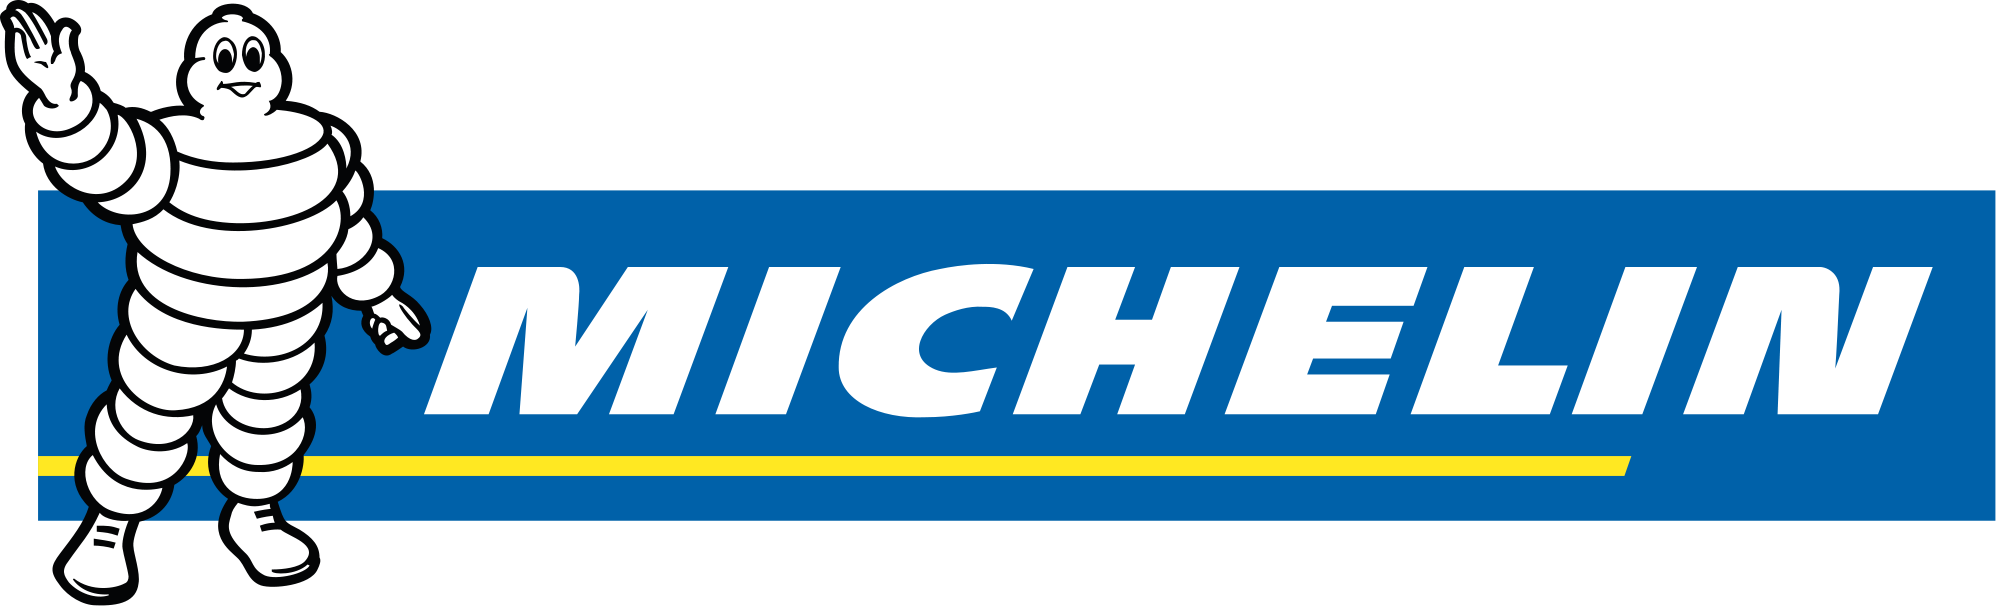 Michelin.png - Michelin PNG